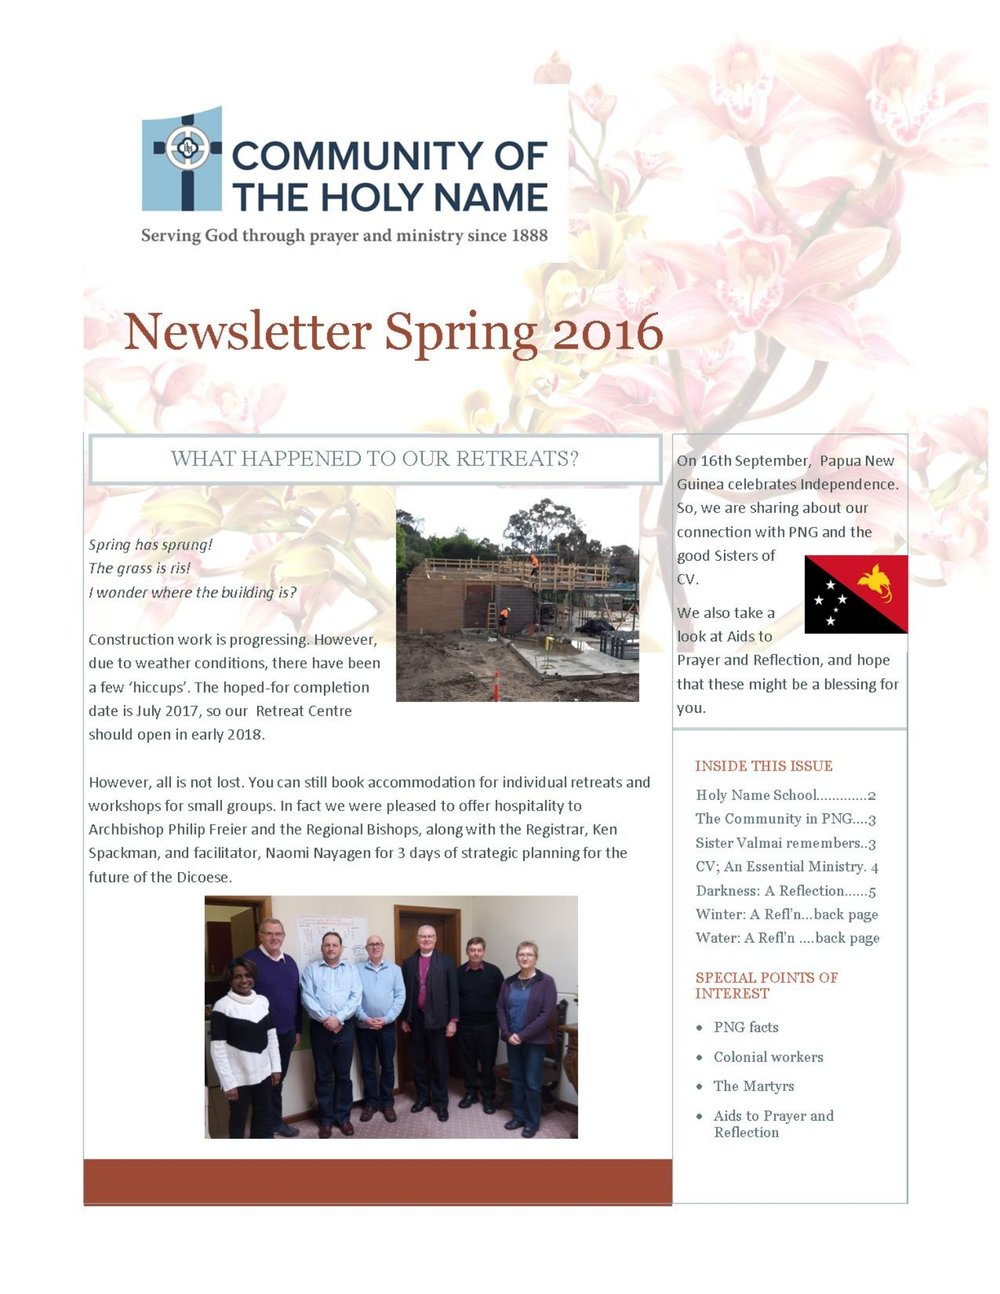 Click on image to download newsletter.